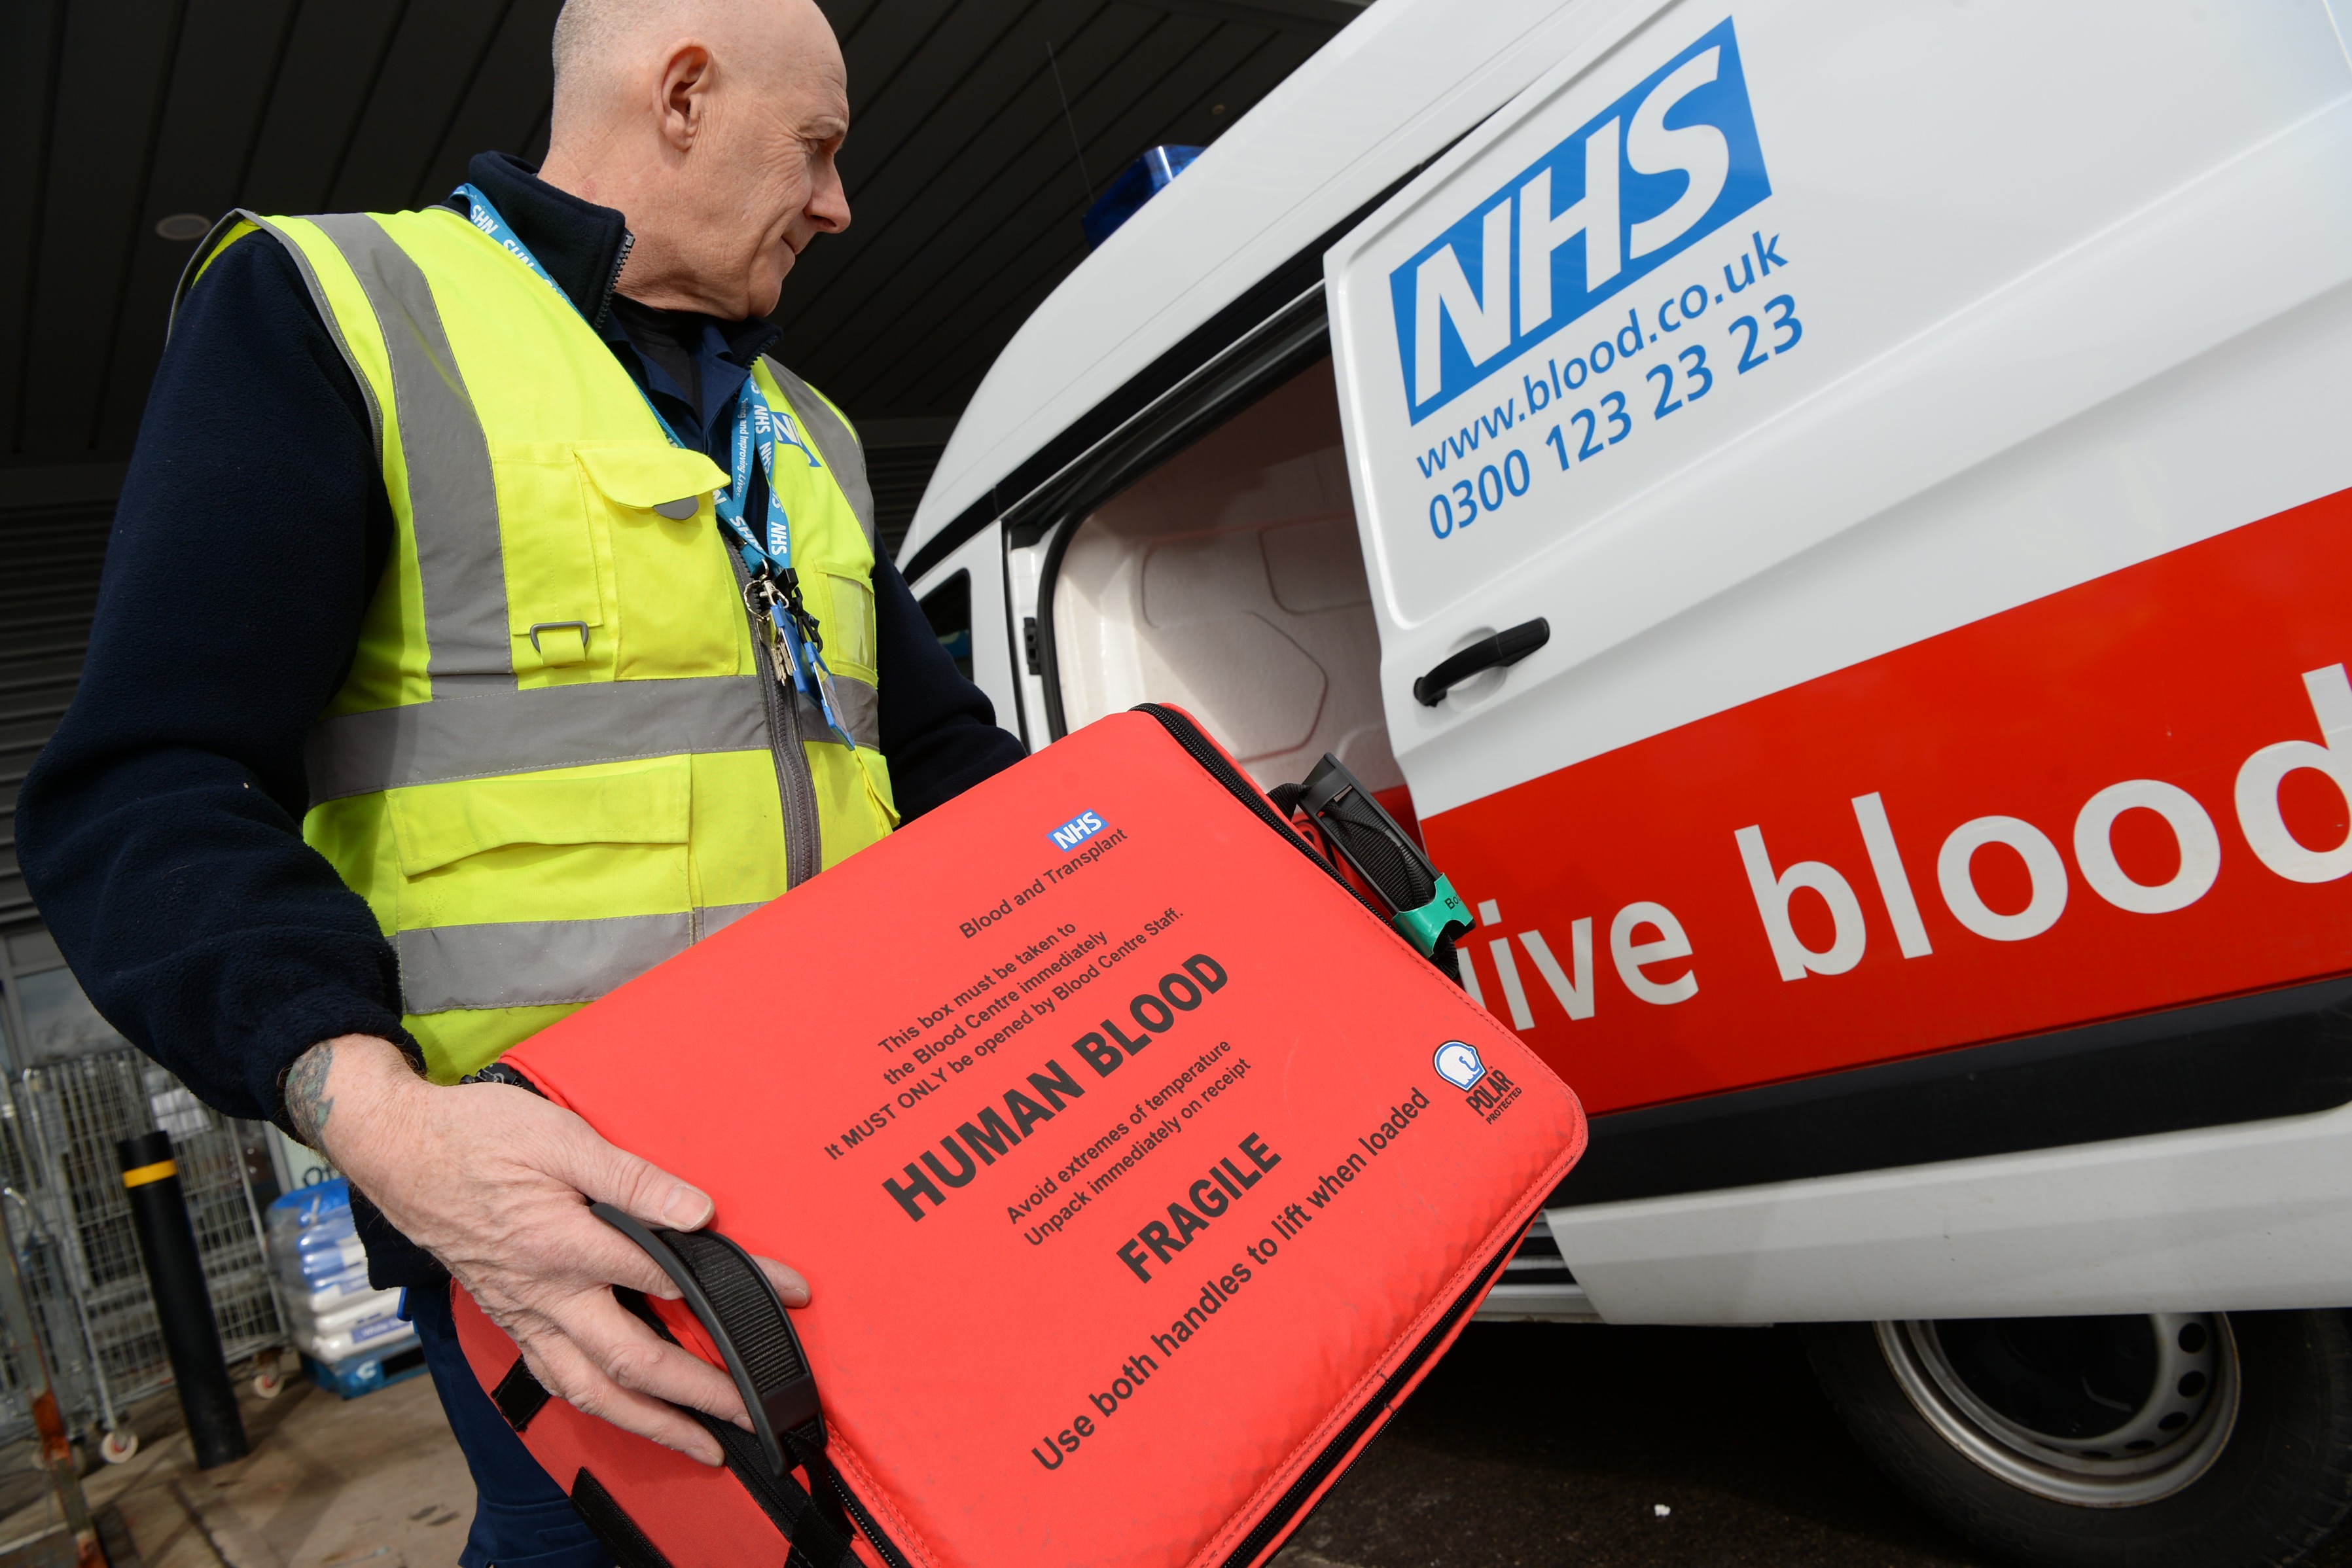 Blood products are carried in boxes